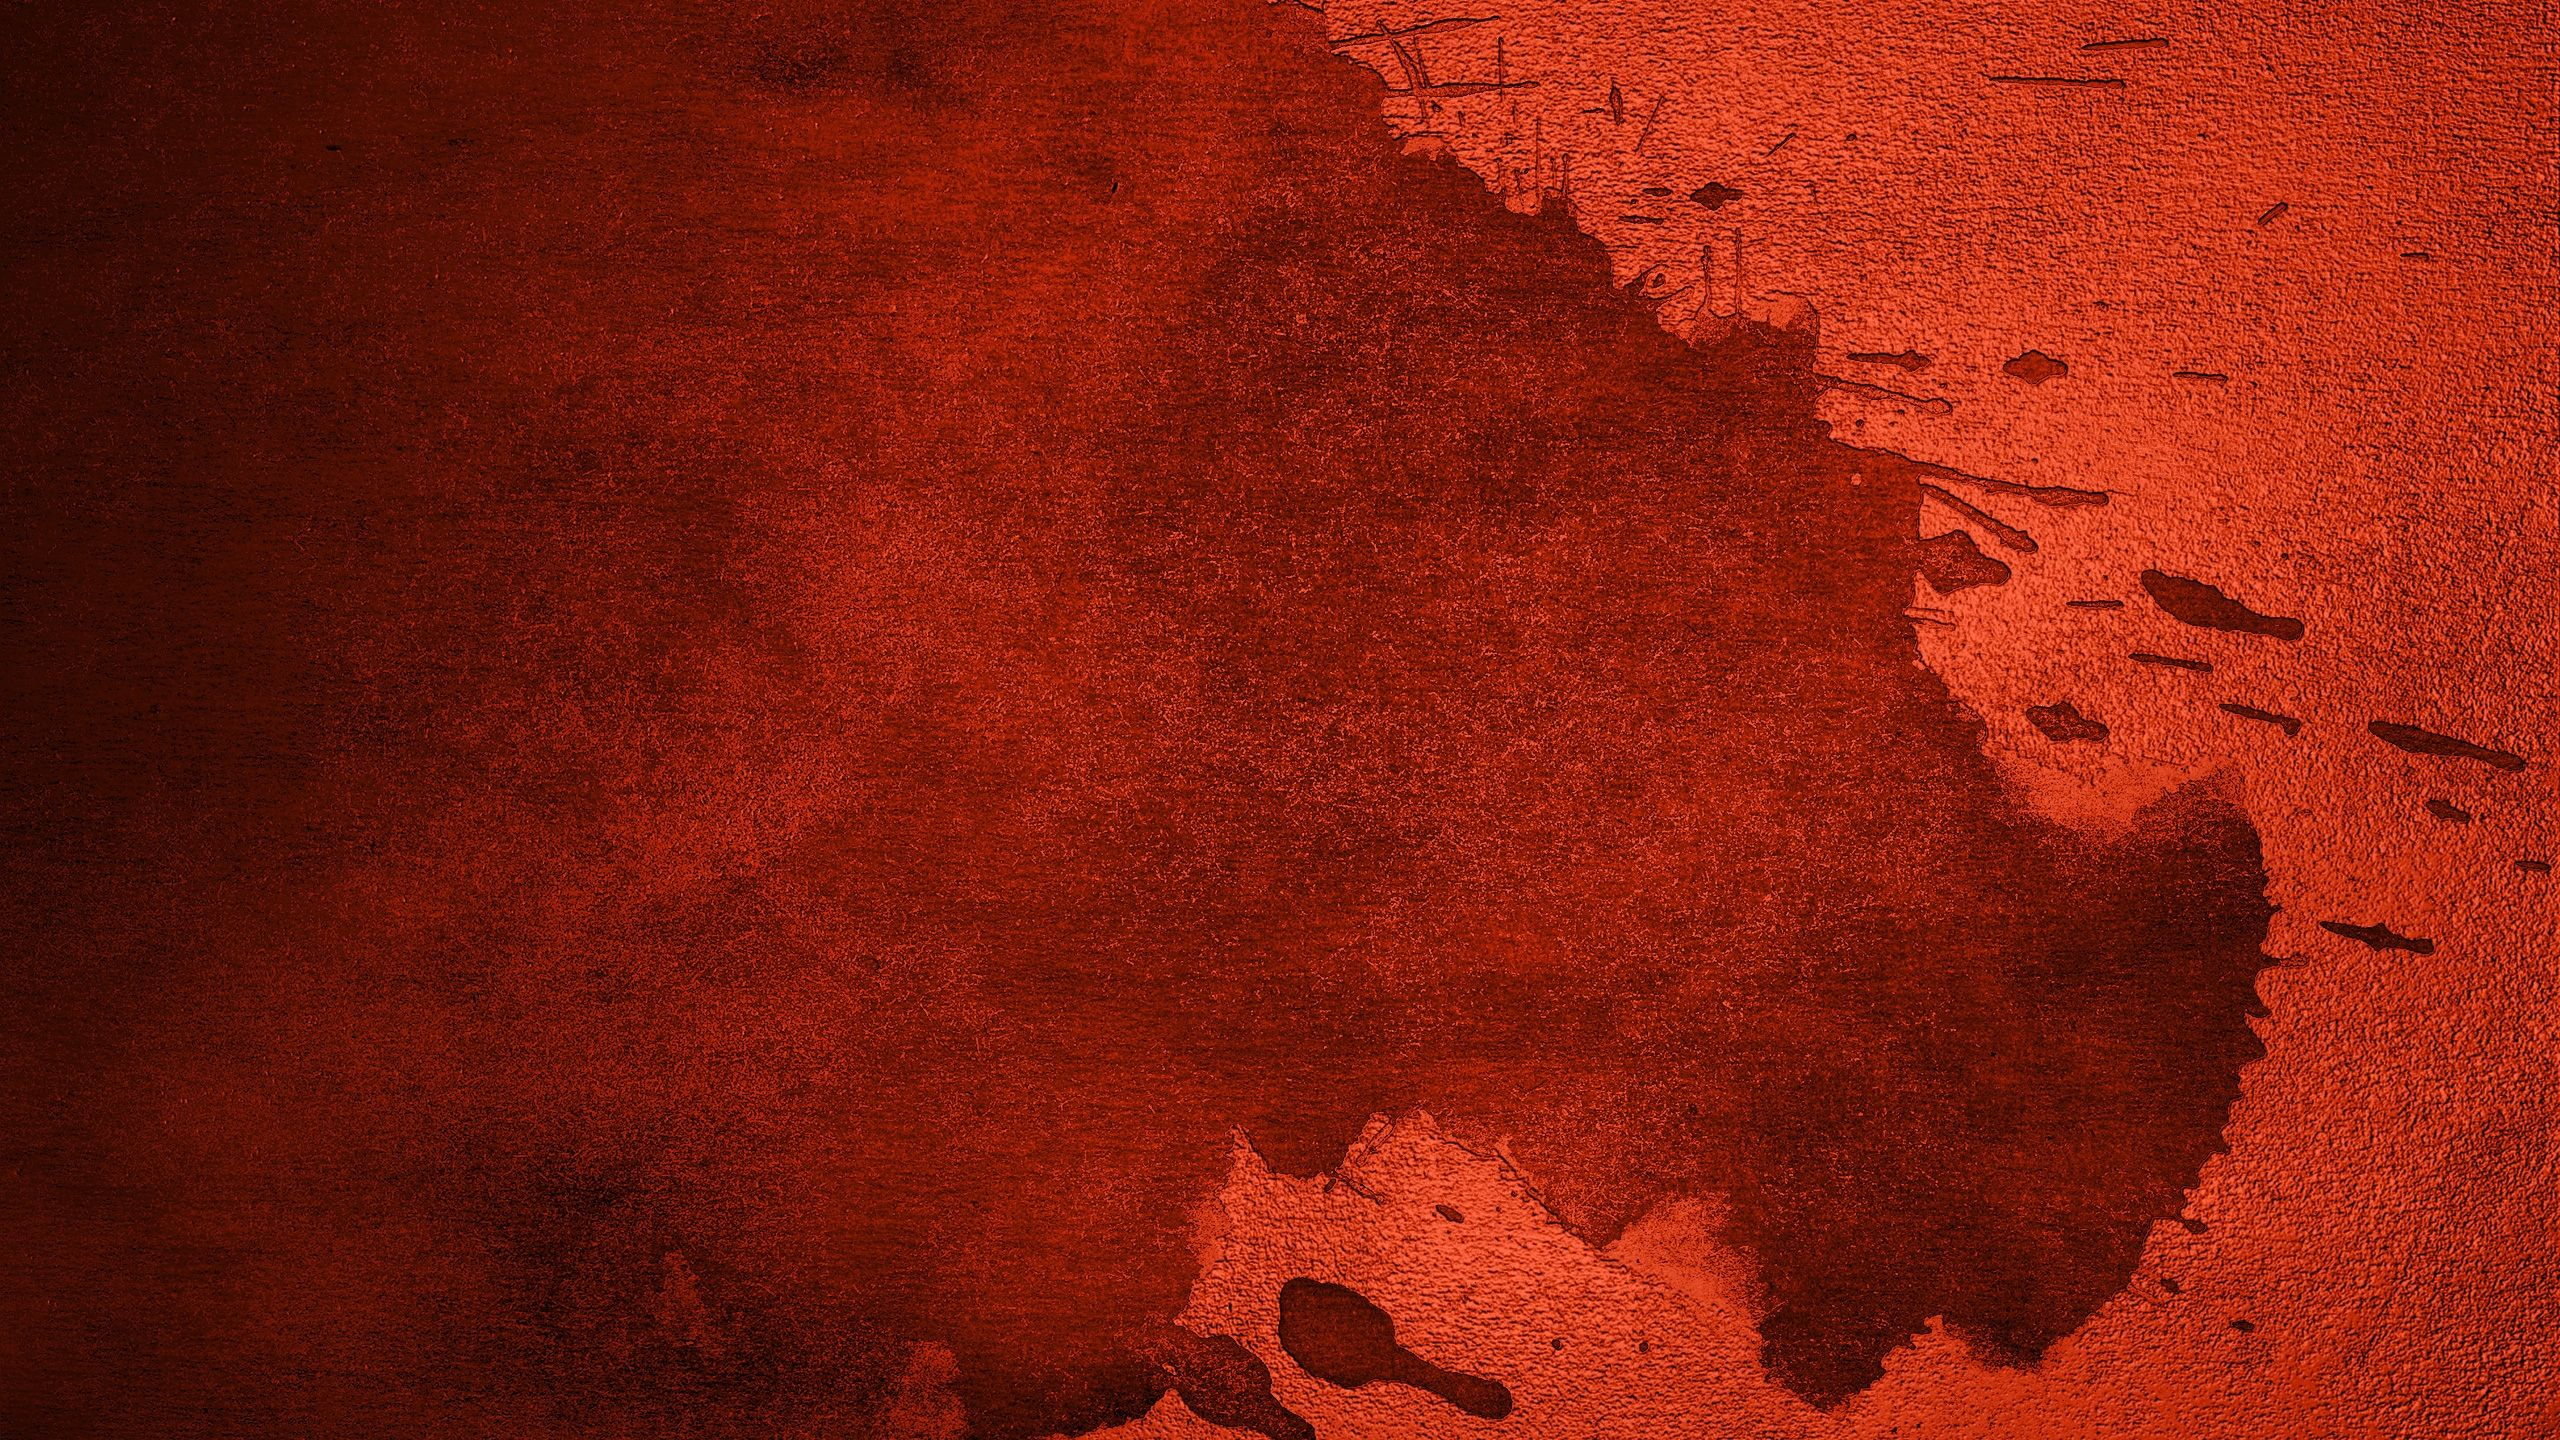 Red Texture Backgrounds For Desktop Wallpaper 2560 X 1440 Px